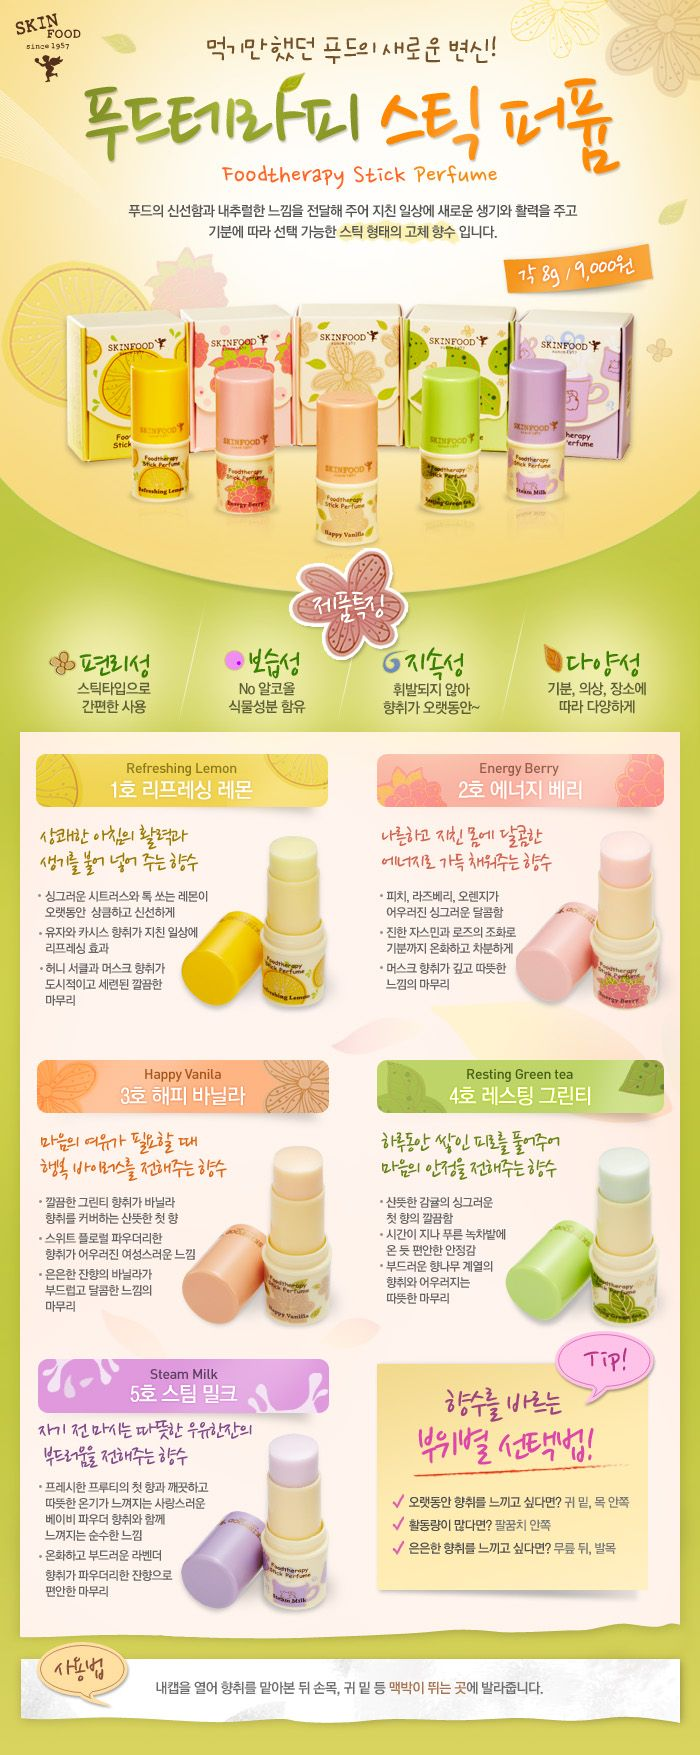 Food Therapy Stick Perfume - nước hoa dạng thỏi có 5 mùi - Refreshing Lemon - Energy Berry - Happy Vanilla - Resting Green Tea - Steam Milk